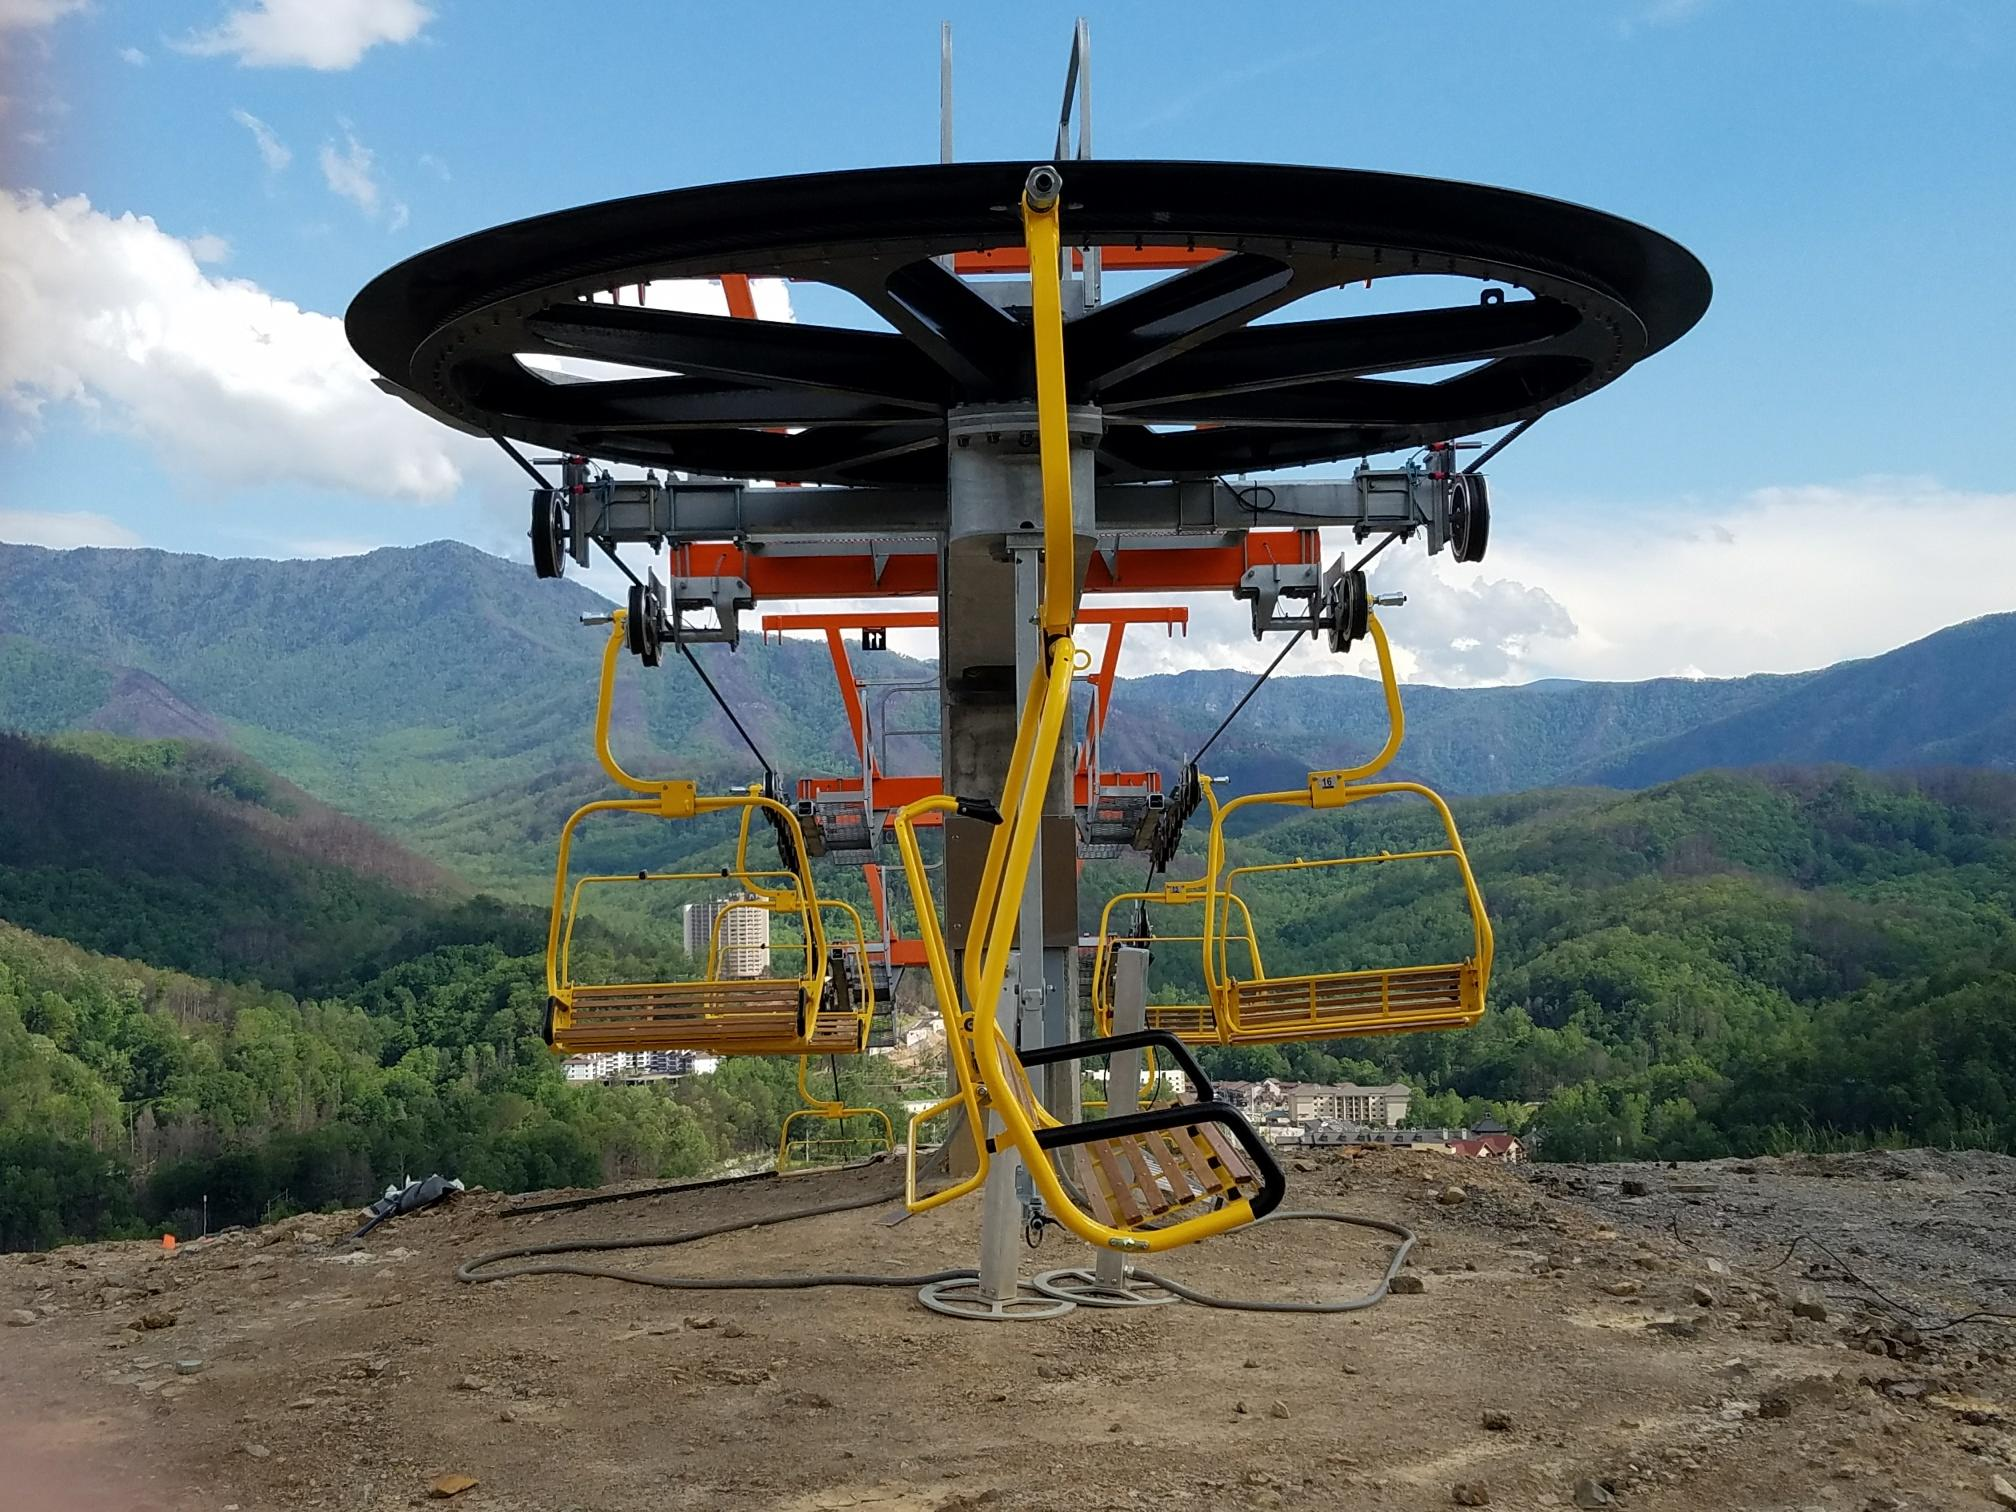 This New And Improved Gatlinburg Sky Lift Replaces A Riblet Double Chair  Destroyed By Wildfire On November 28th, 2016. Photos Credit: Everett Kircher